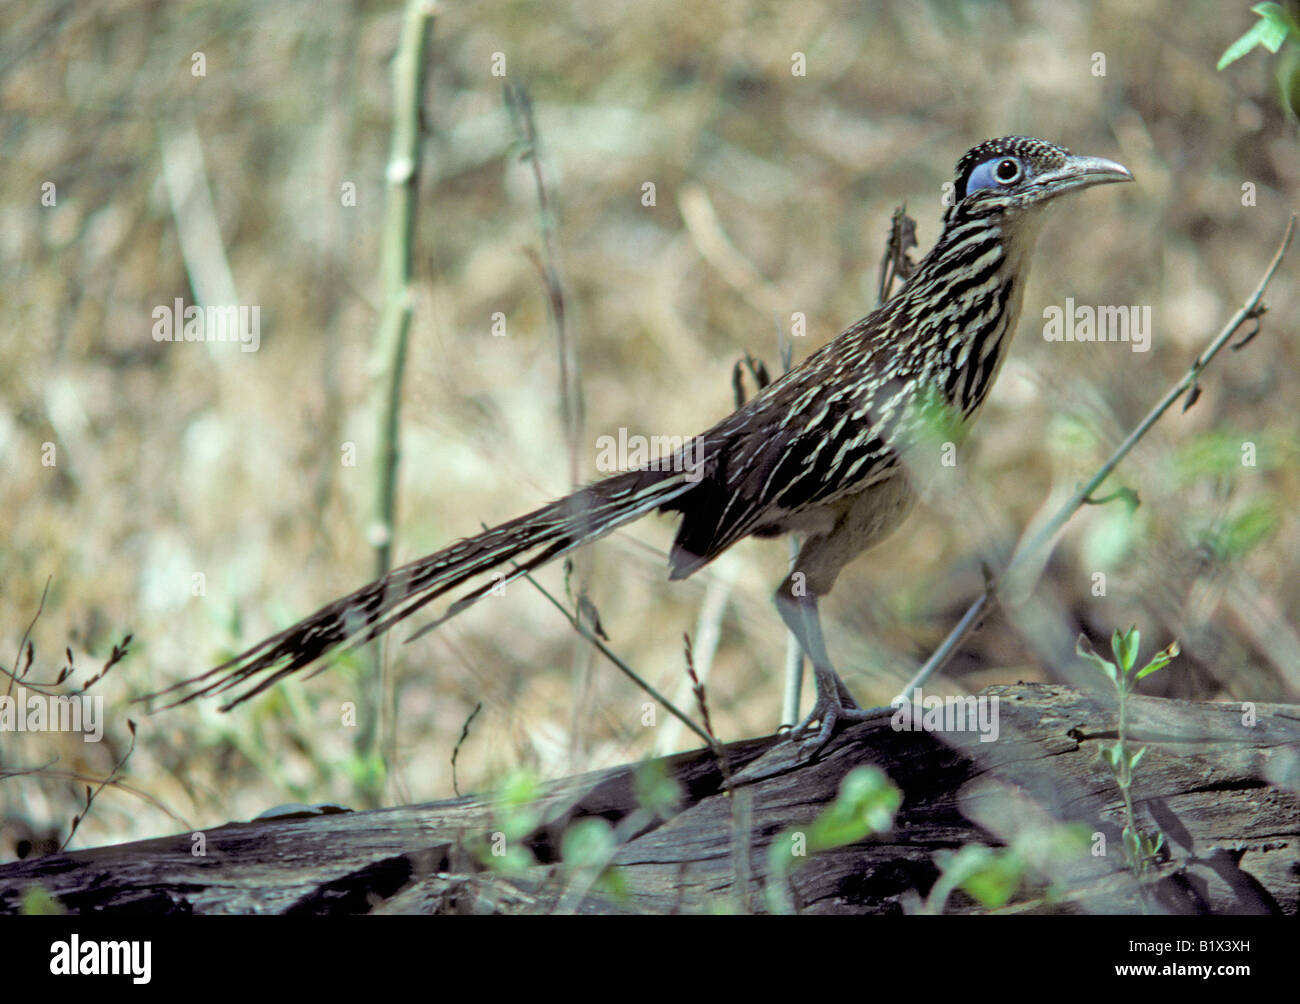 Lesser Roadrunner Geococcyx velox Alamos Sonora MEXICO September Adult Cuculidae - Stock Image